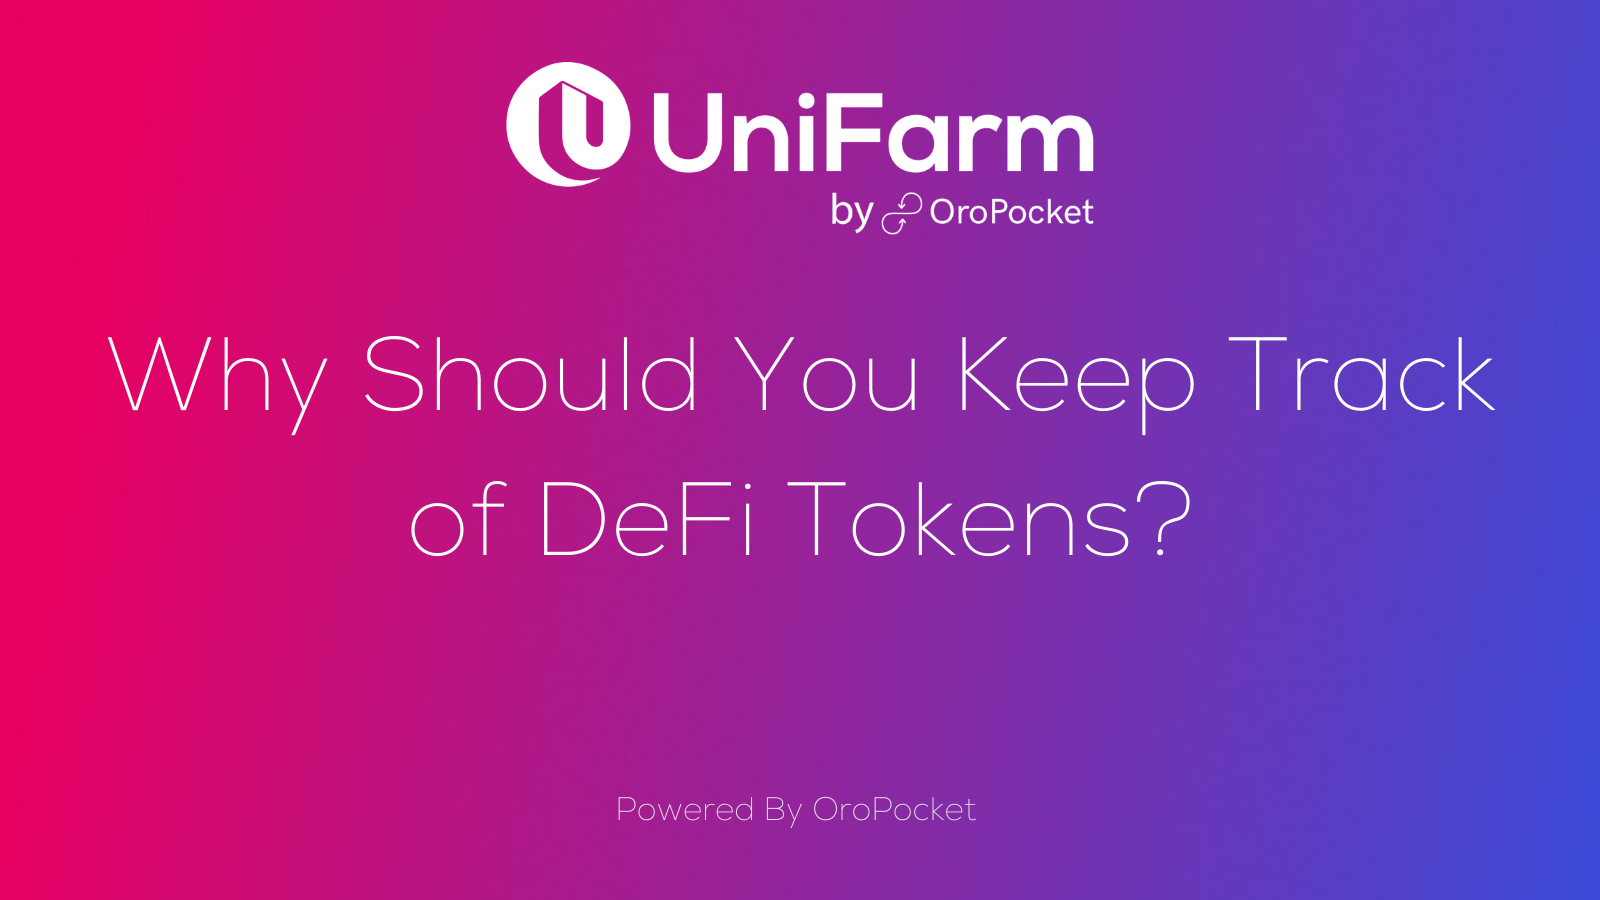 Why Should You Keep Track of DeFi Tokens?